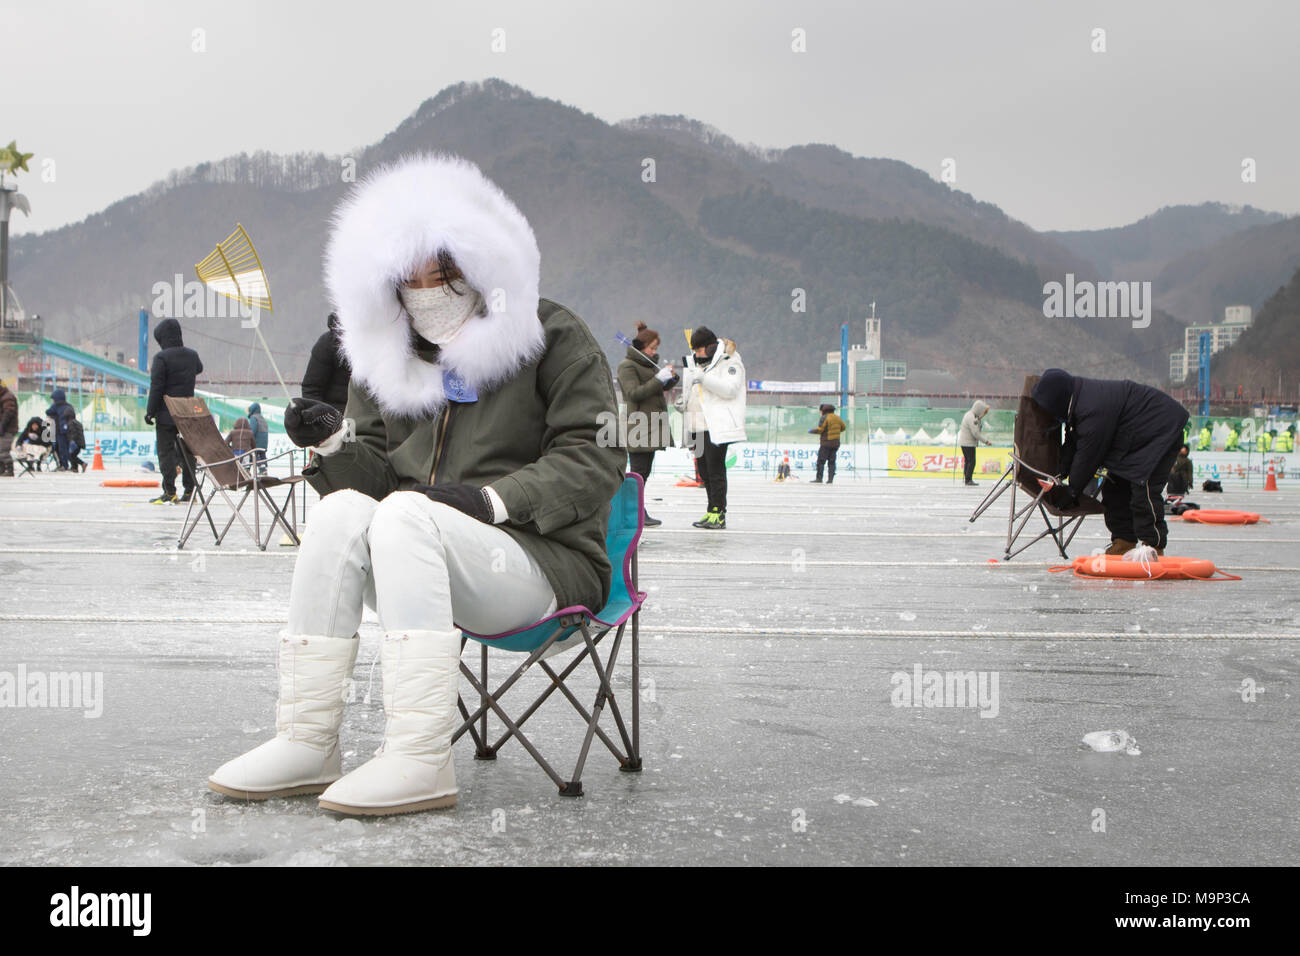 A woman warmly dressed in a thick fur coat is waiting above a hole in the ice during the ice fishing festival at Hwacheon Sancheoneo in the Gangwon-do region of South Korea.  The Hwacheon Sancheoneo Ice Festival is a tradition for Korean people. Every year in January crowds gather at the frozen river to celebrate the cold and snow of winter. Main attraction is ice fishing. Young and old wait patiently over a small hole in the ice for a trout to bite. In tents they can let the fish grilled after which they are eaten. Among other activities are sledding and ice skating.  The nearby Pyeongchang - Stock Image